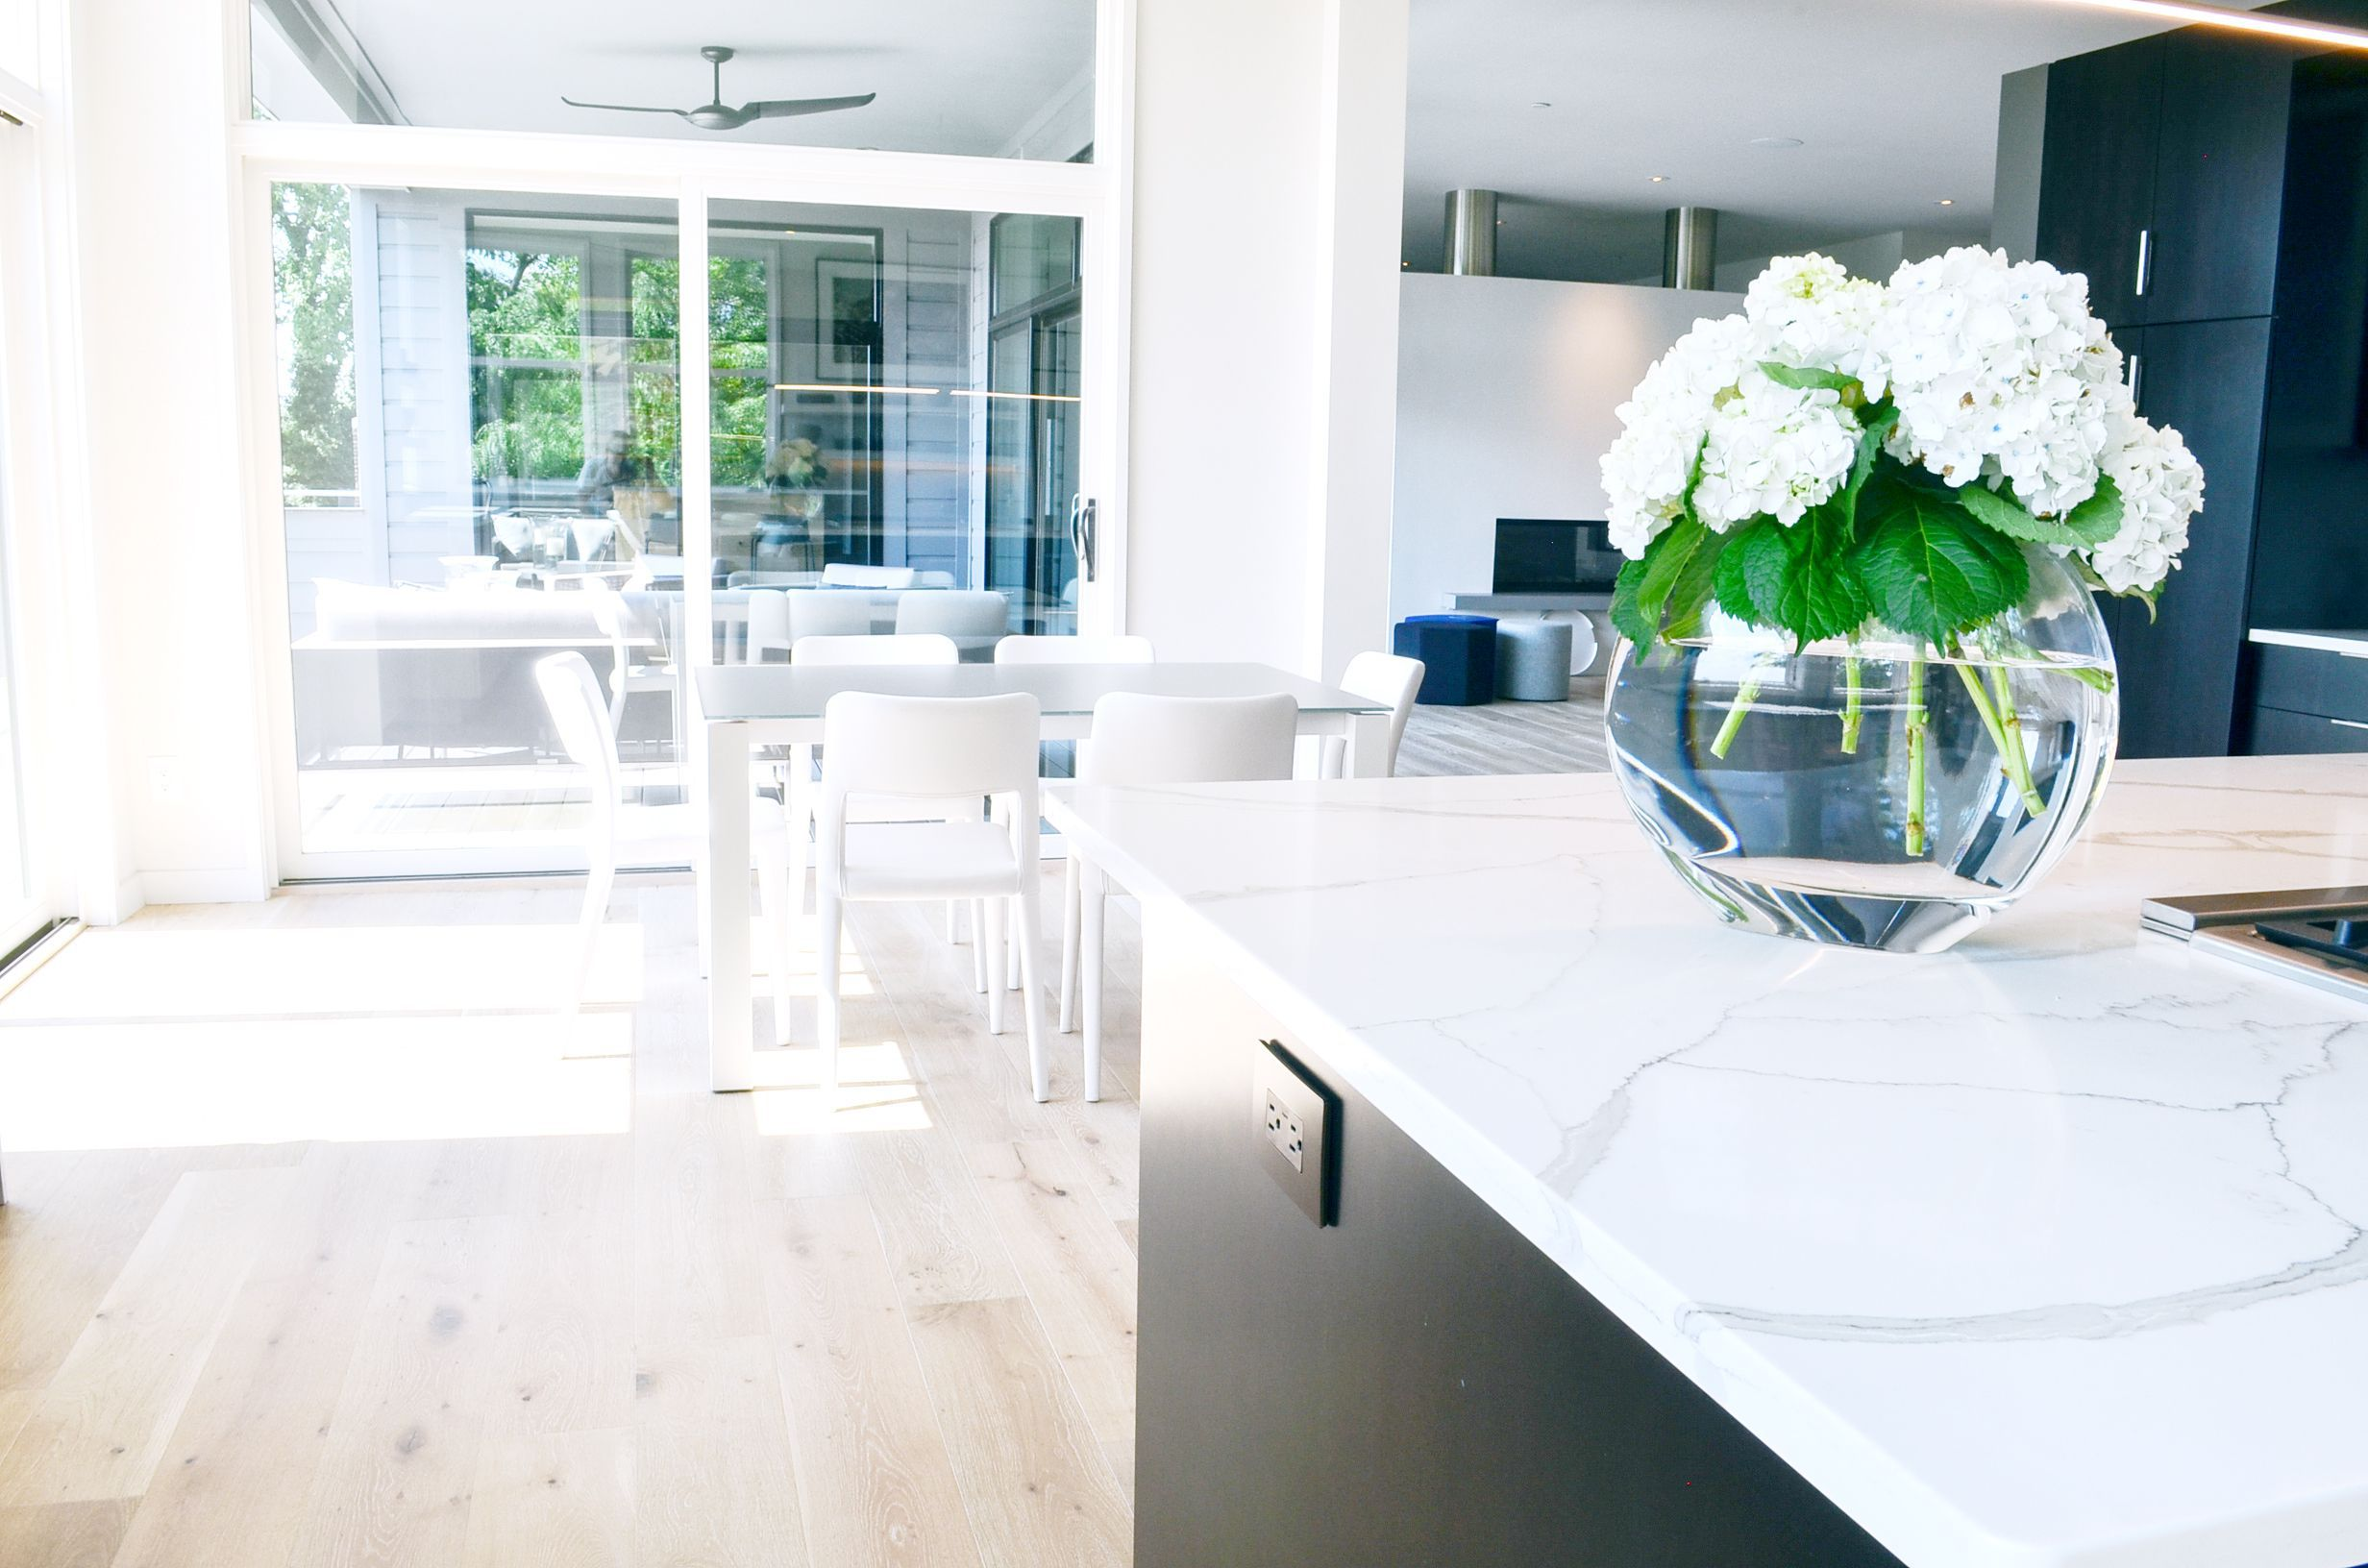 Minimal, modern, and clean white furnishings in a modern kitchen by interior designer, RM Interiors.